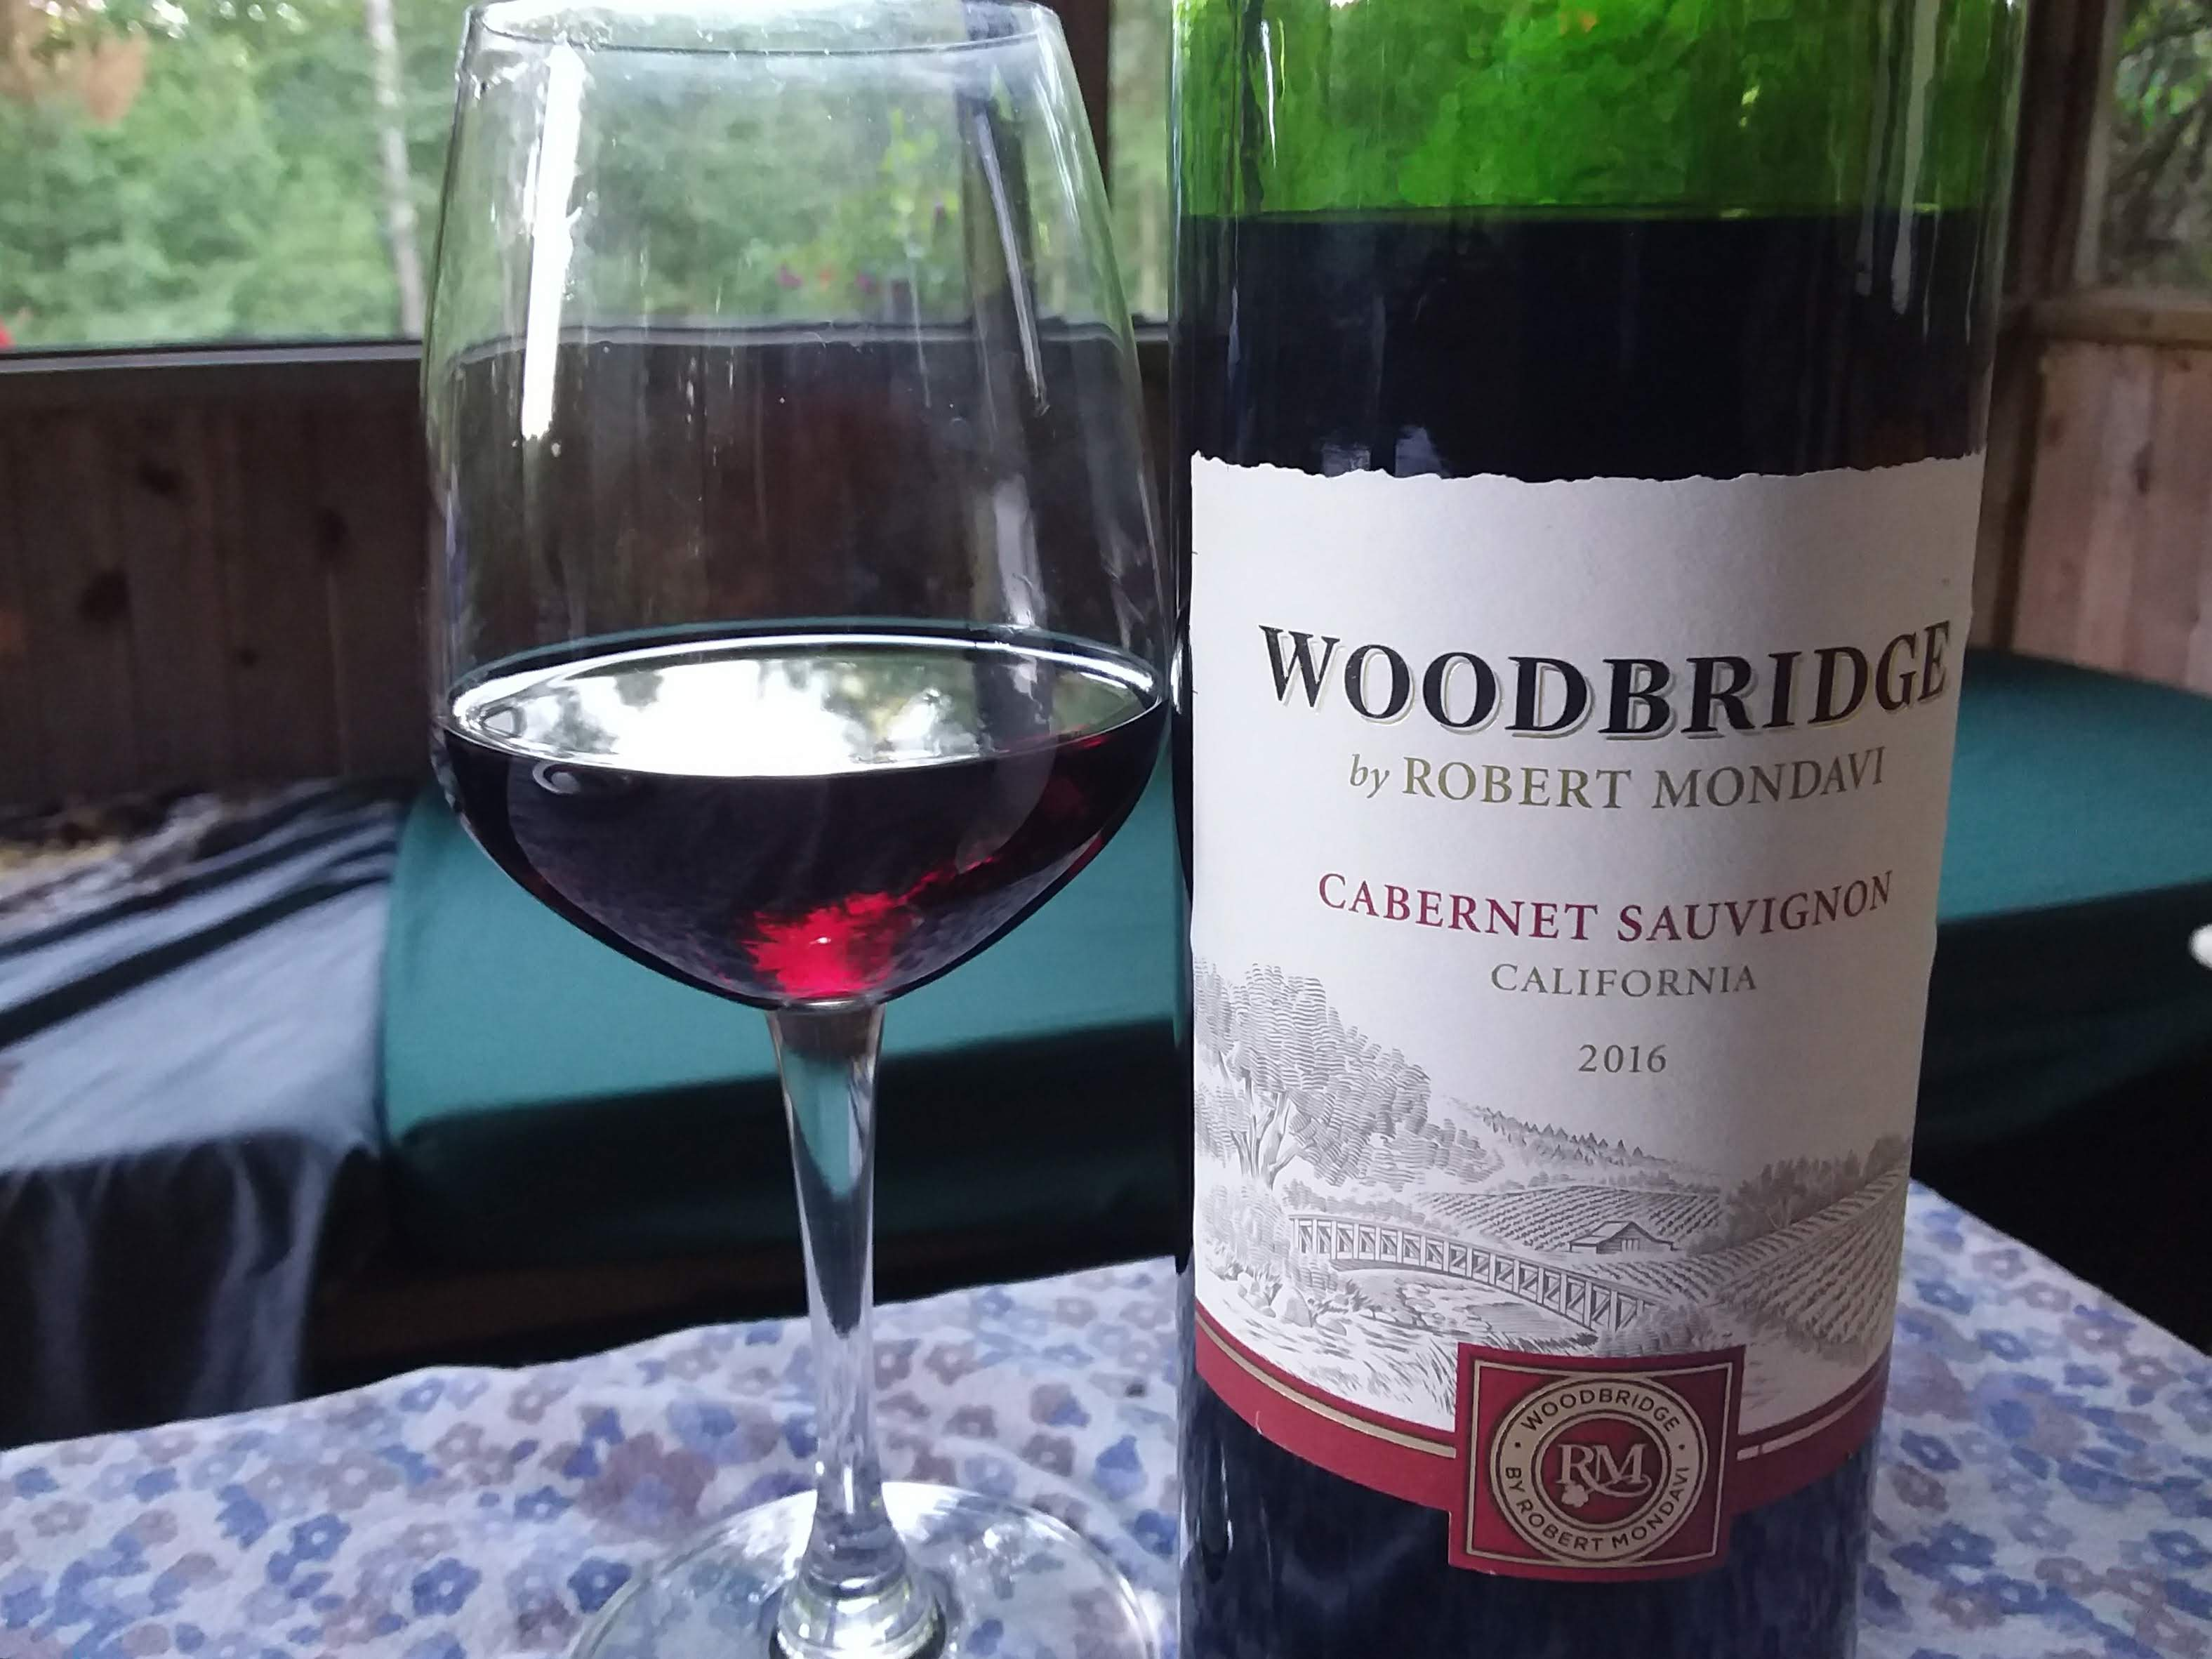 Woodbridge by Robert Mondavi Cabernet Sauvignon 2016